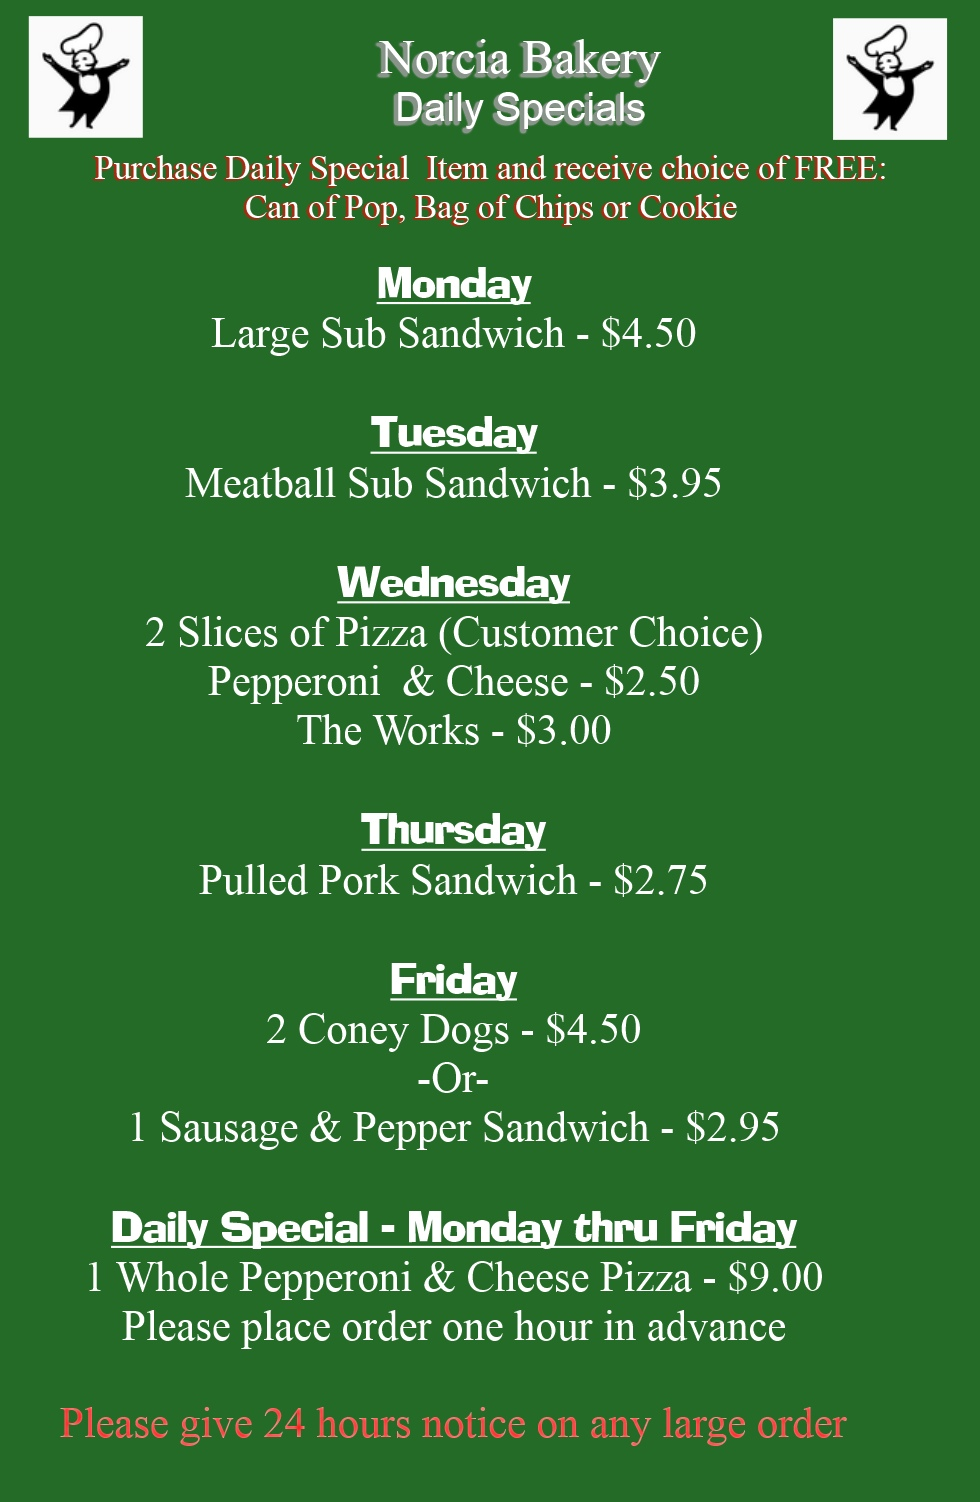 Daily Specials at Norcia Bakery